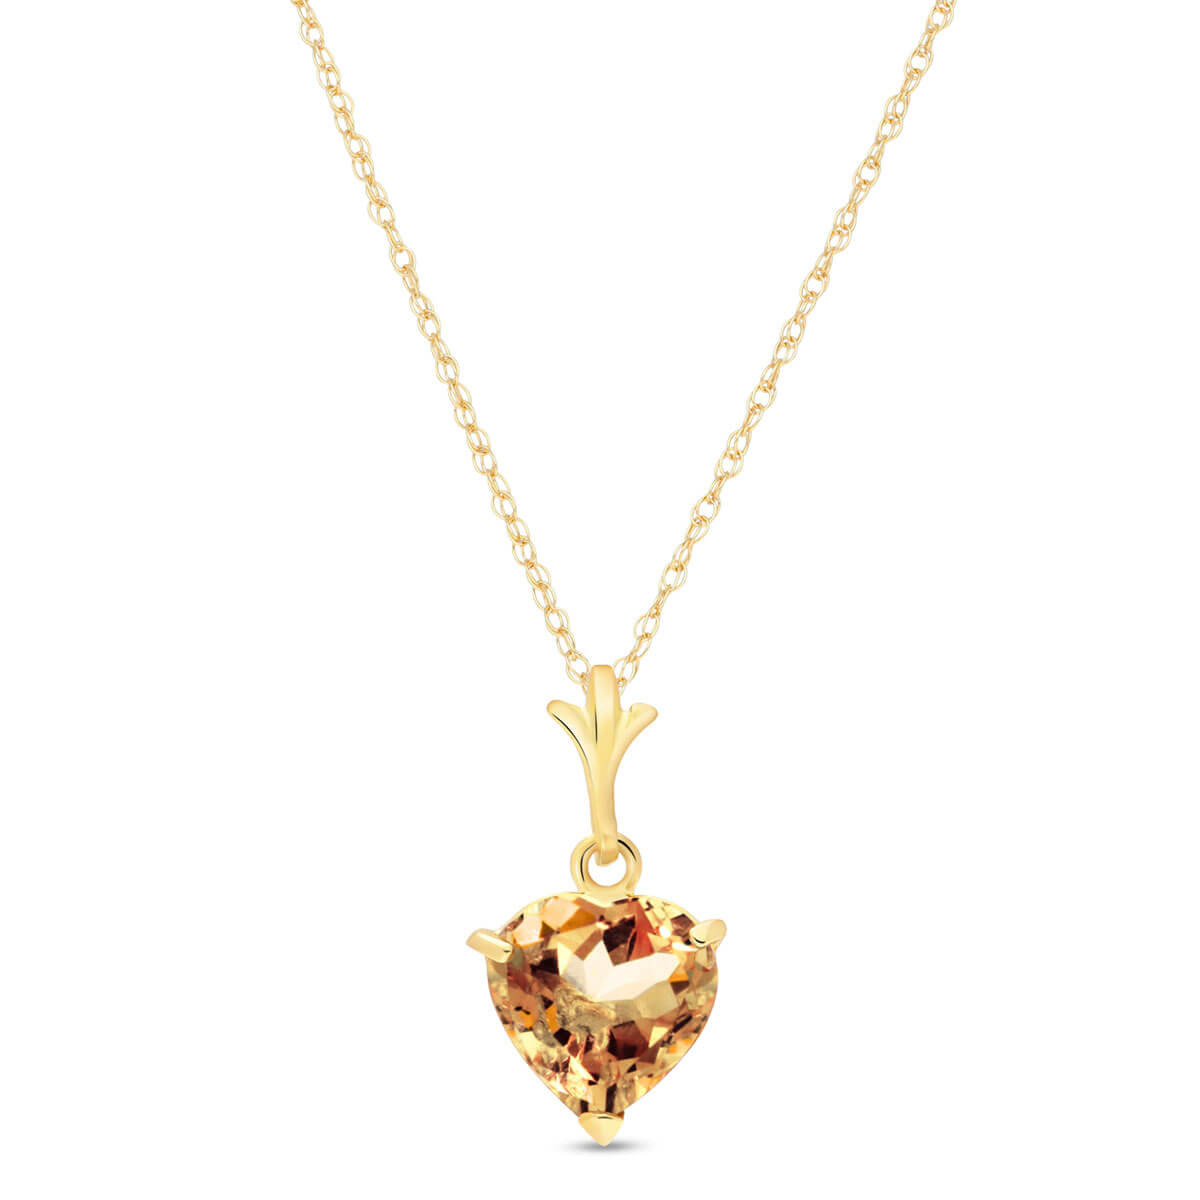 Citrine Heart Pendant Necklace 1.15 ct in 9ct Gold